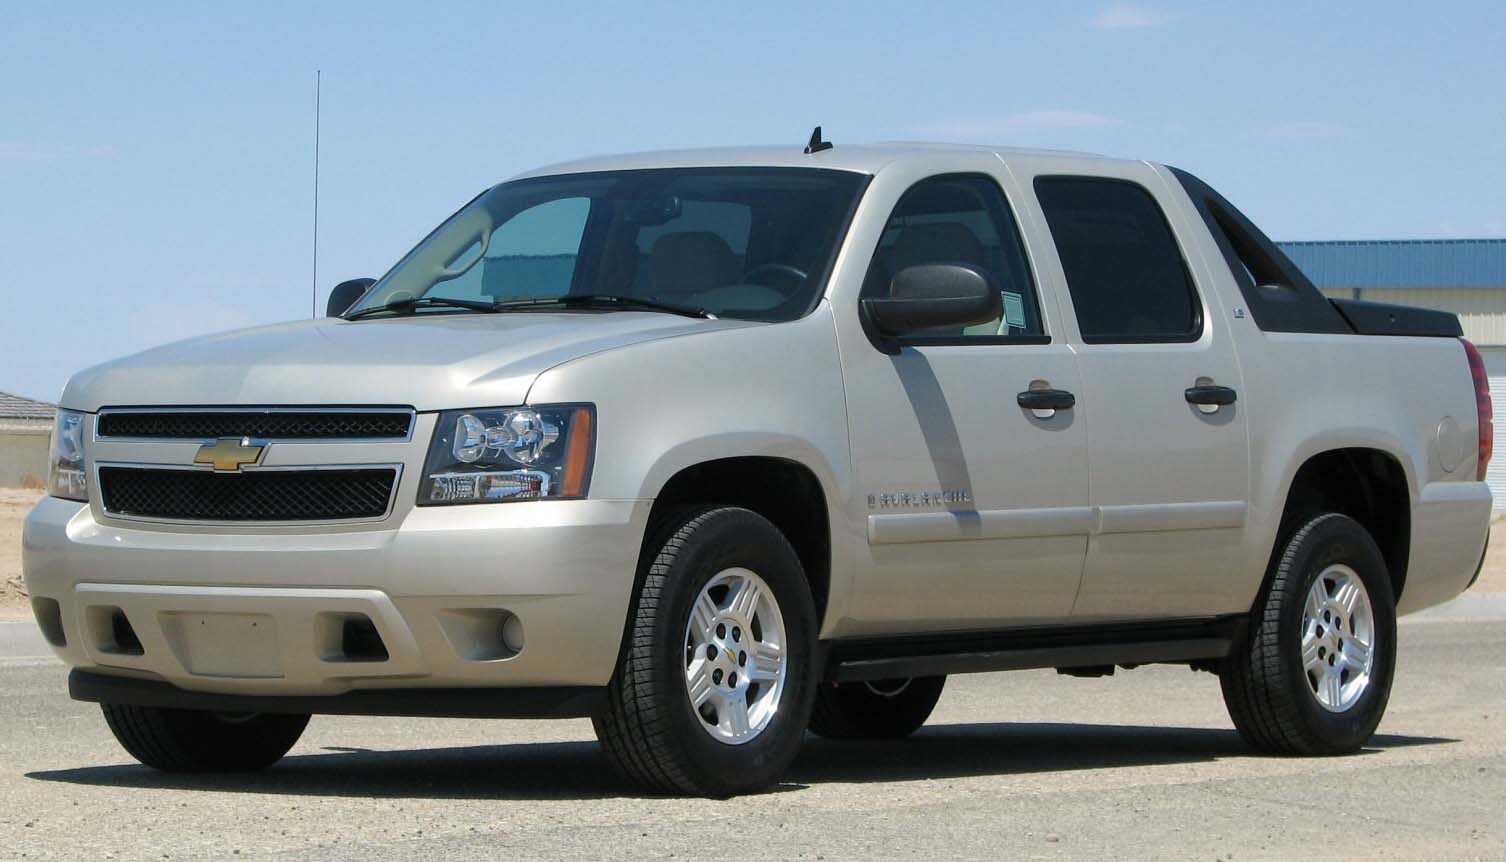 Chevrolet Avalanche photo 14